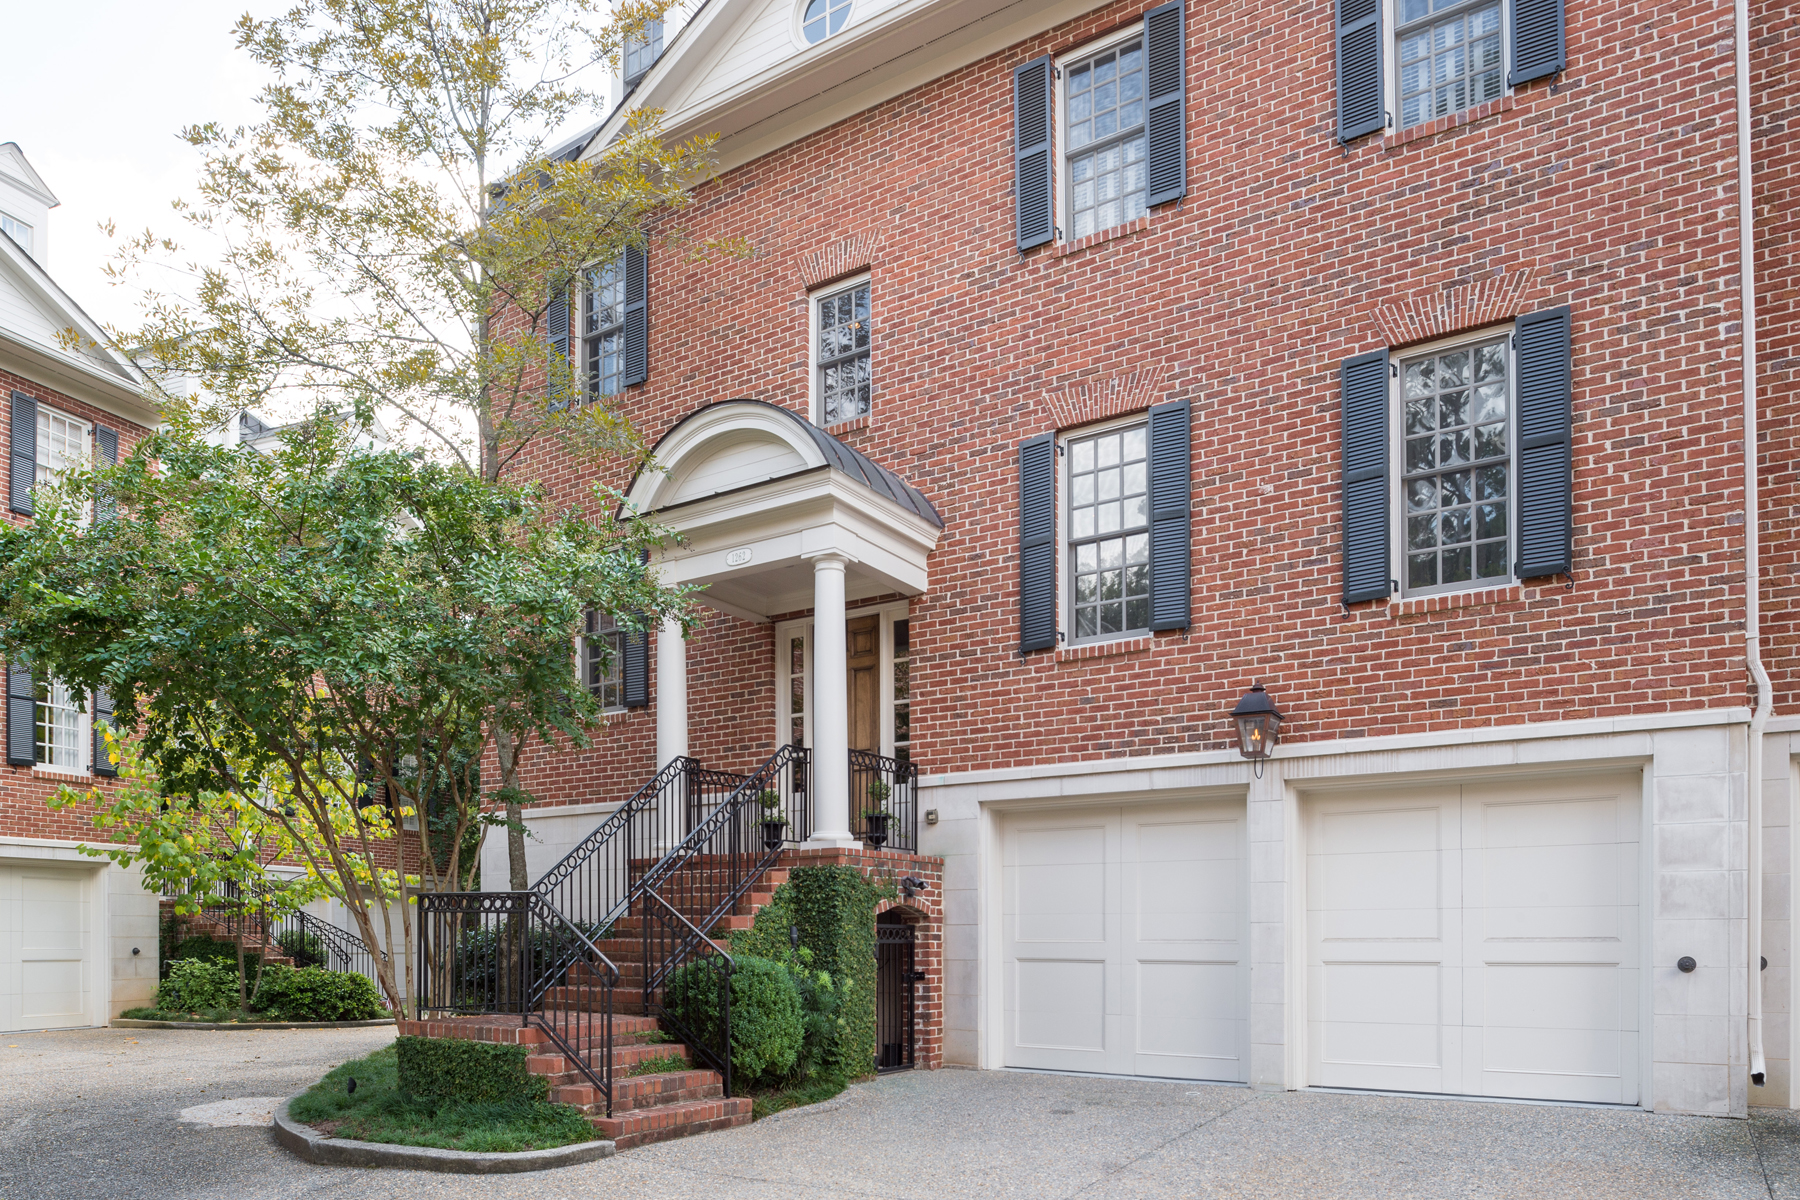 Townhouse for Sale at Handsome Federal Style Townhouse 1262 Bellaire Lane NE Unit 7 Atlanta, Georgia, 30319 United States